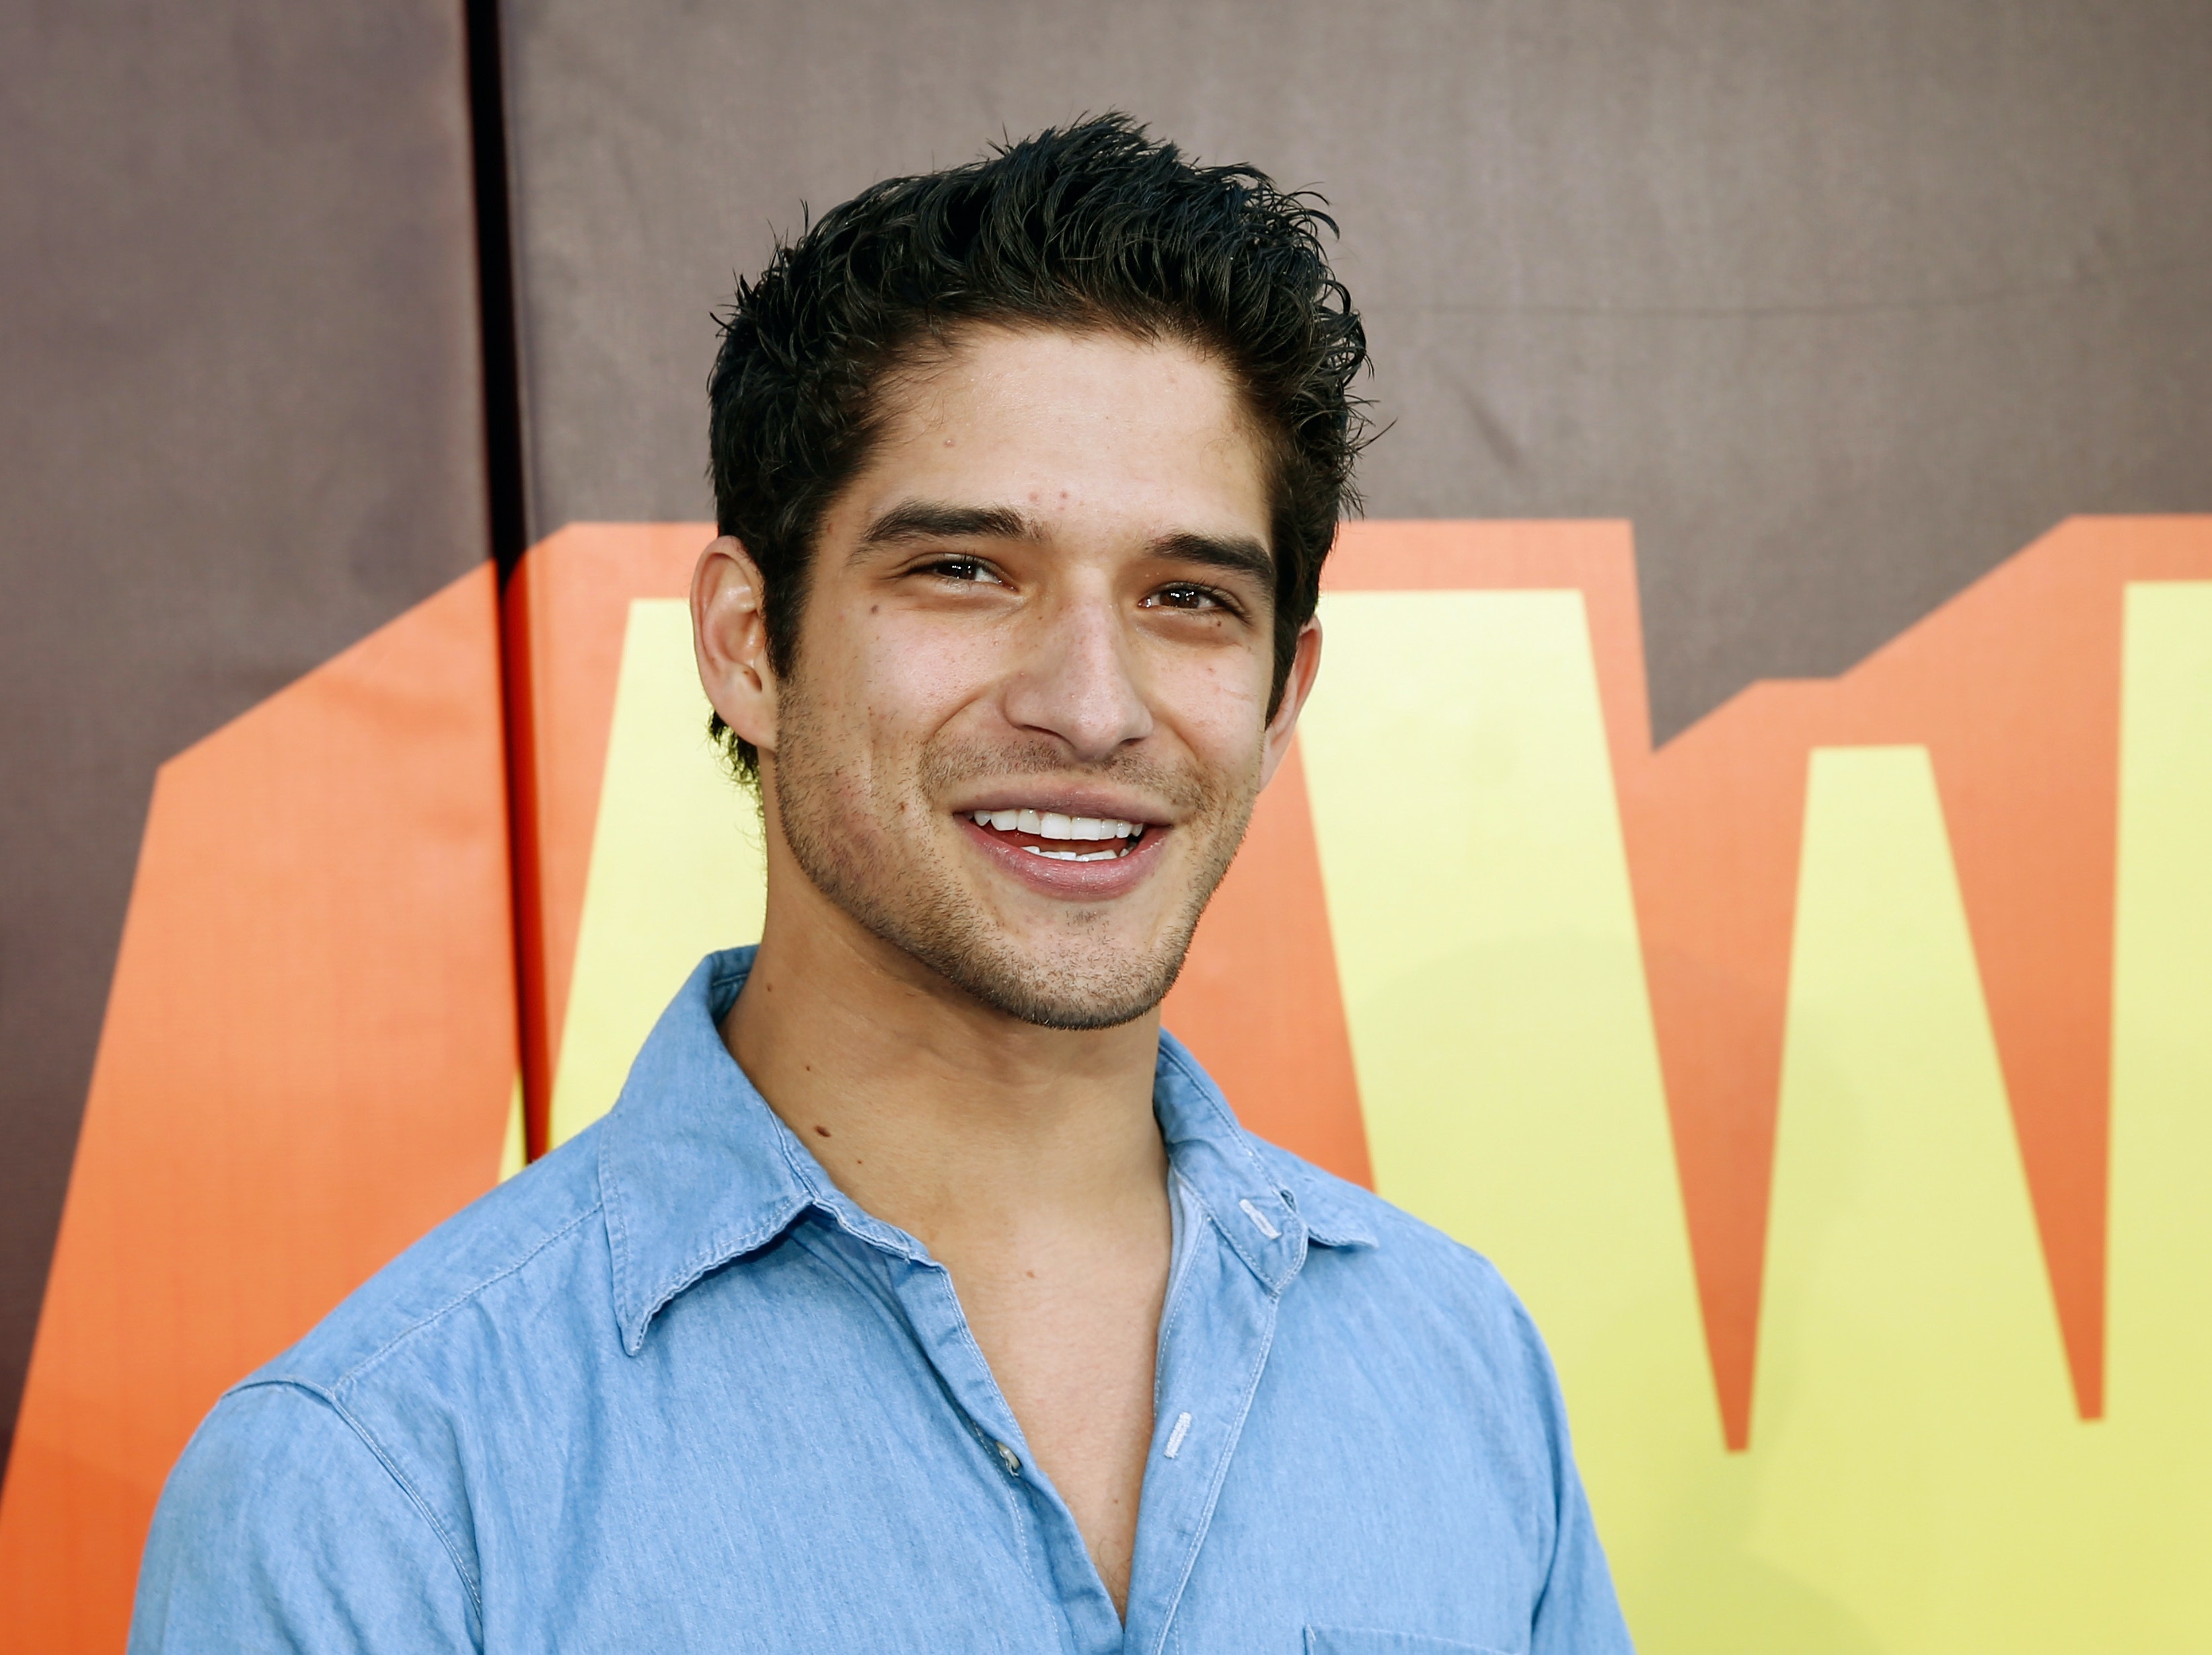 Tyler Posey, Cody Christian, and Other Celeb Nudes Just Got Leaked